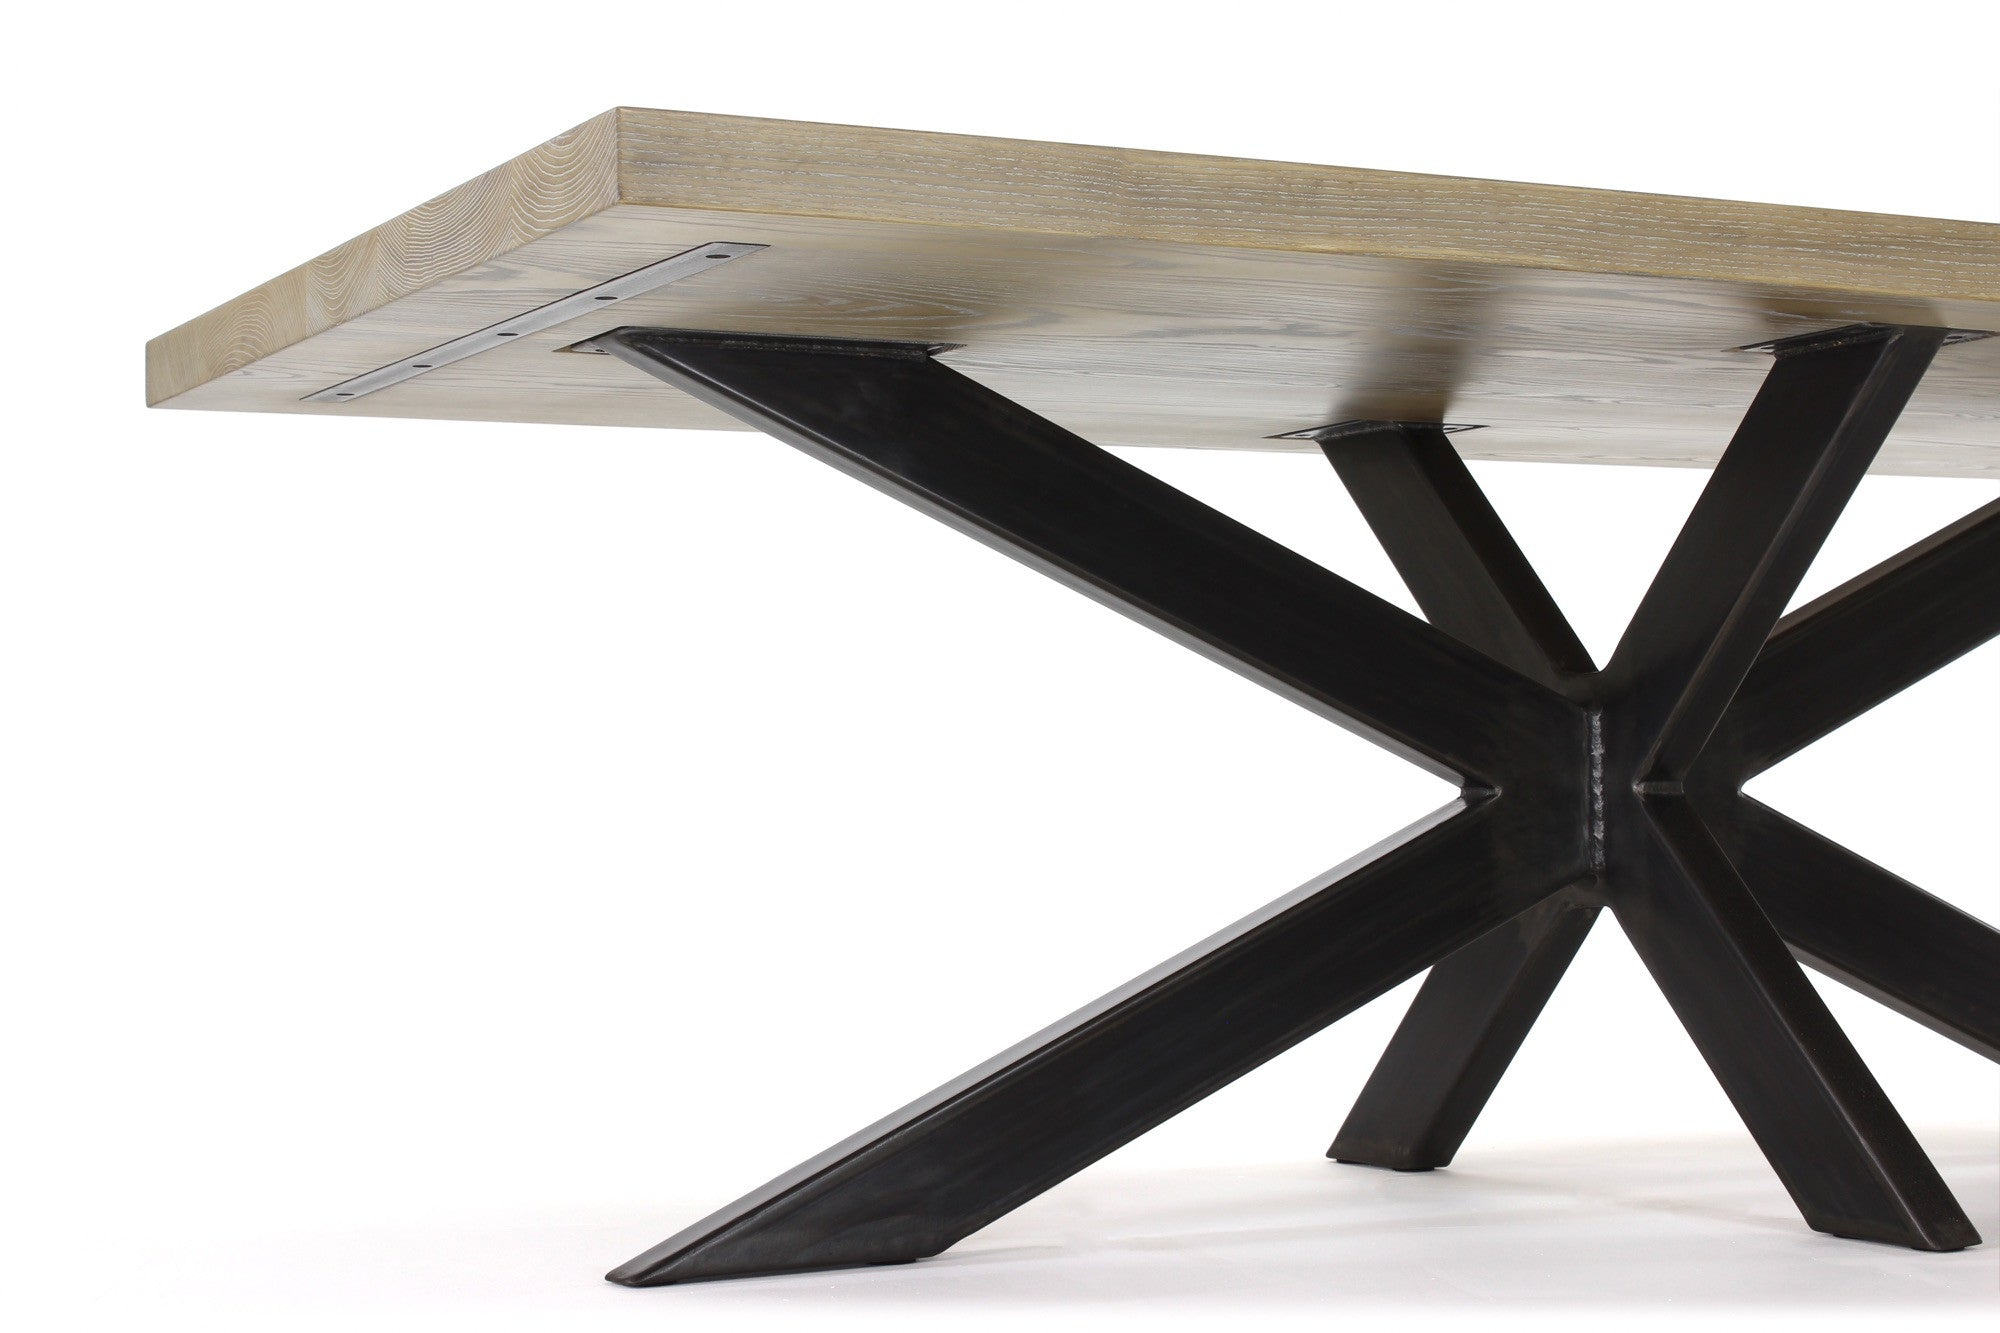 6' long jak dining table | cerused ash wood finish with waxed steel